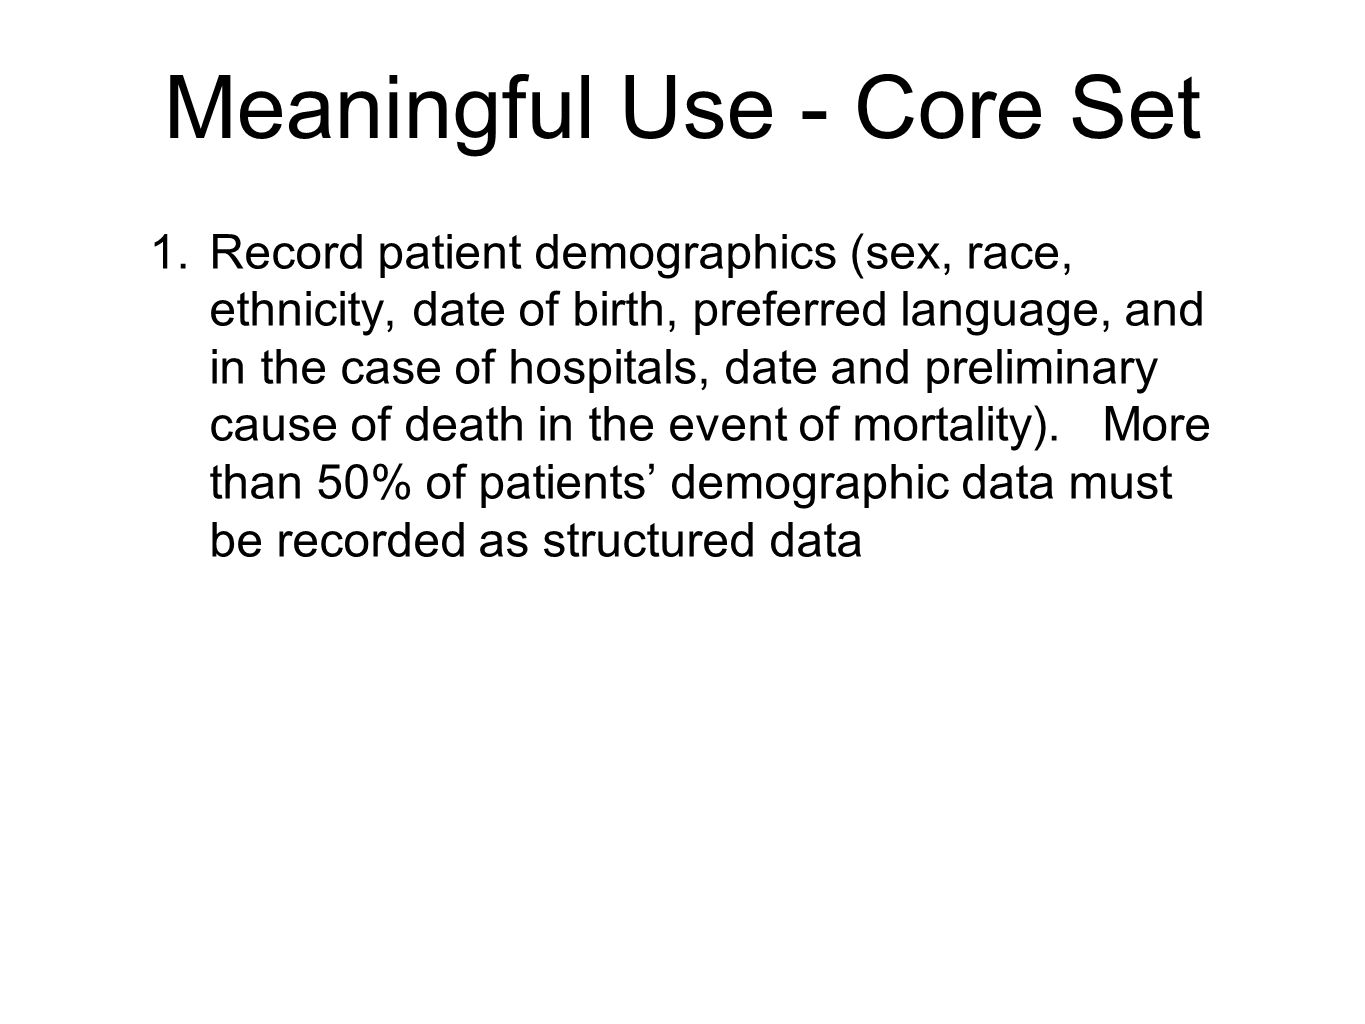 Meaningful Use - Core Set 1. Record patient demographics (sex, race, ethnicity, date of birth, preferred language, and in the case of hospitals, date